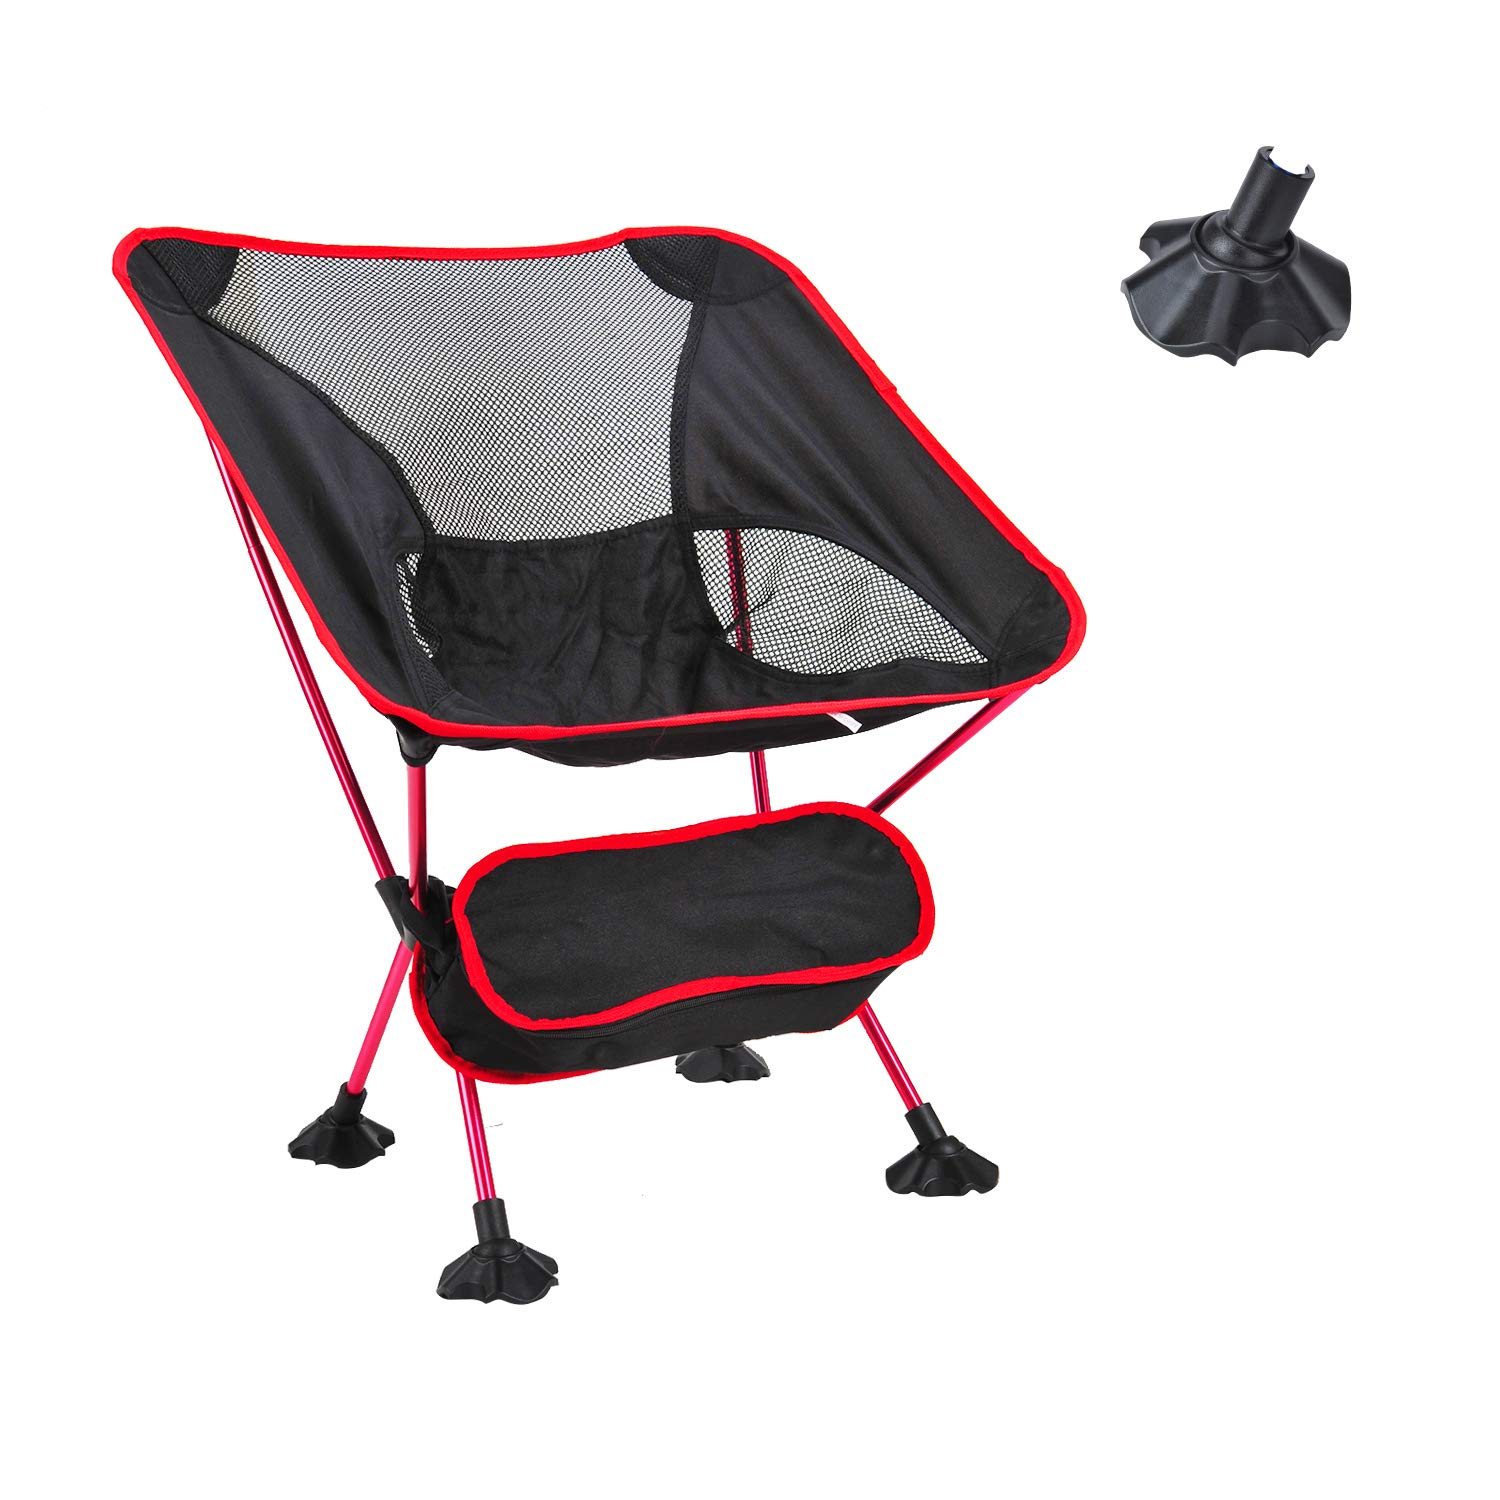 Geezo Ultralight Folding Camping Chair,Portable Chairs with Carry Bag Heavy Duty 264lbs Capacity for Backpacking, Hiking, Picnic Red